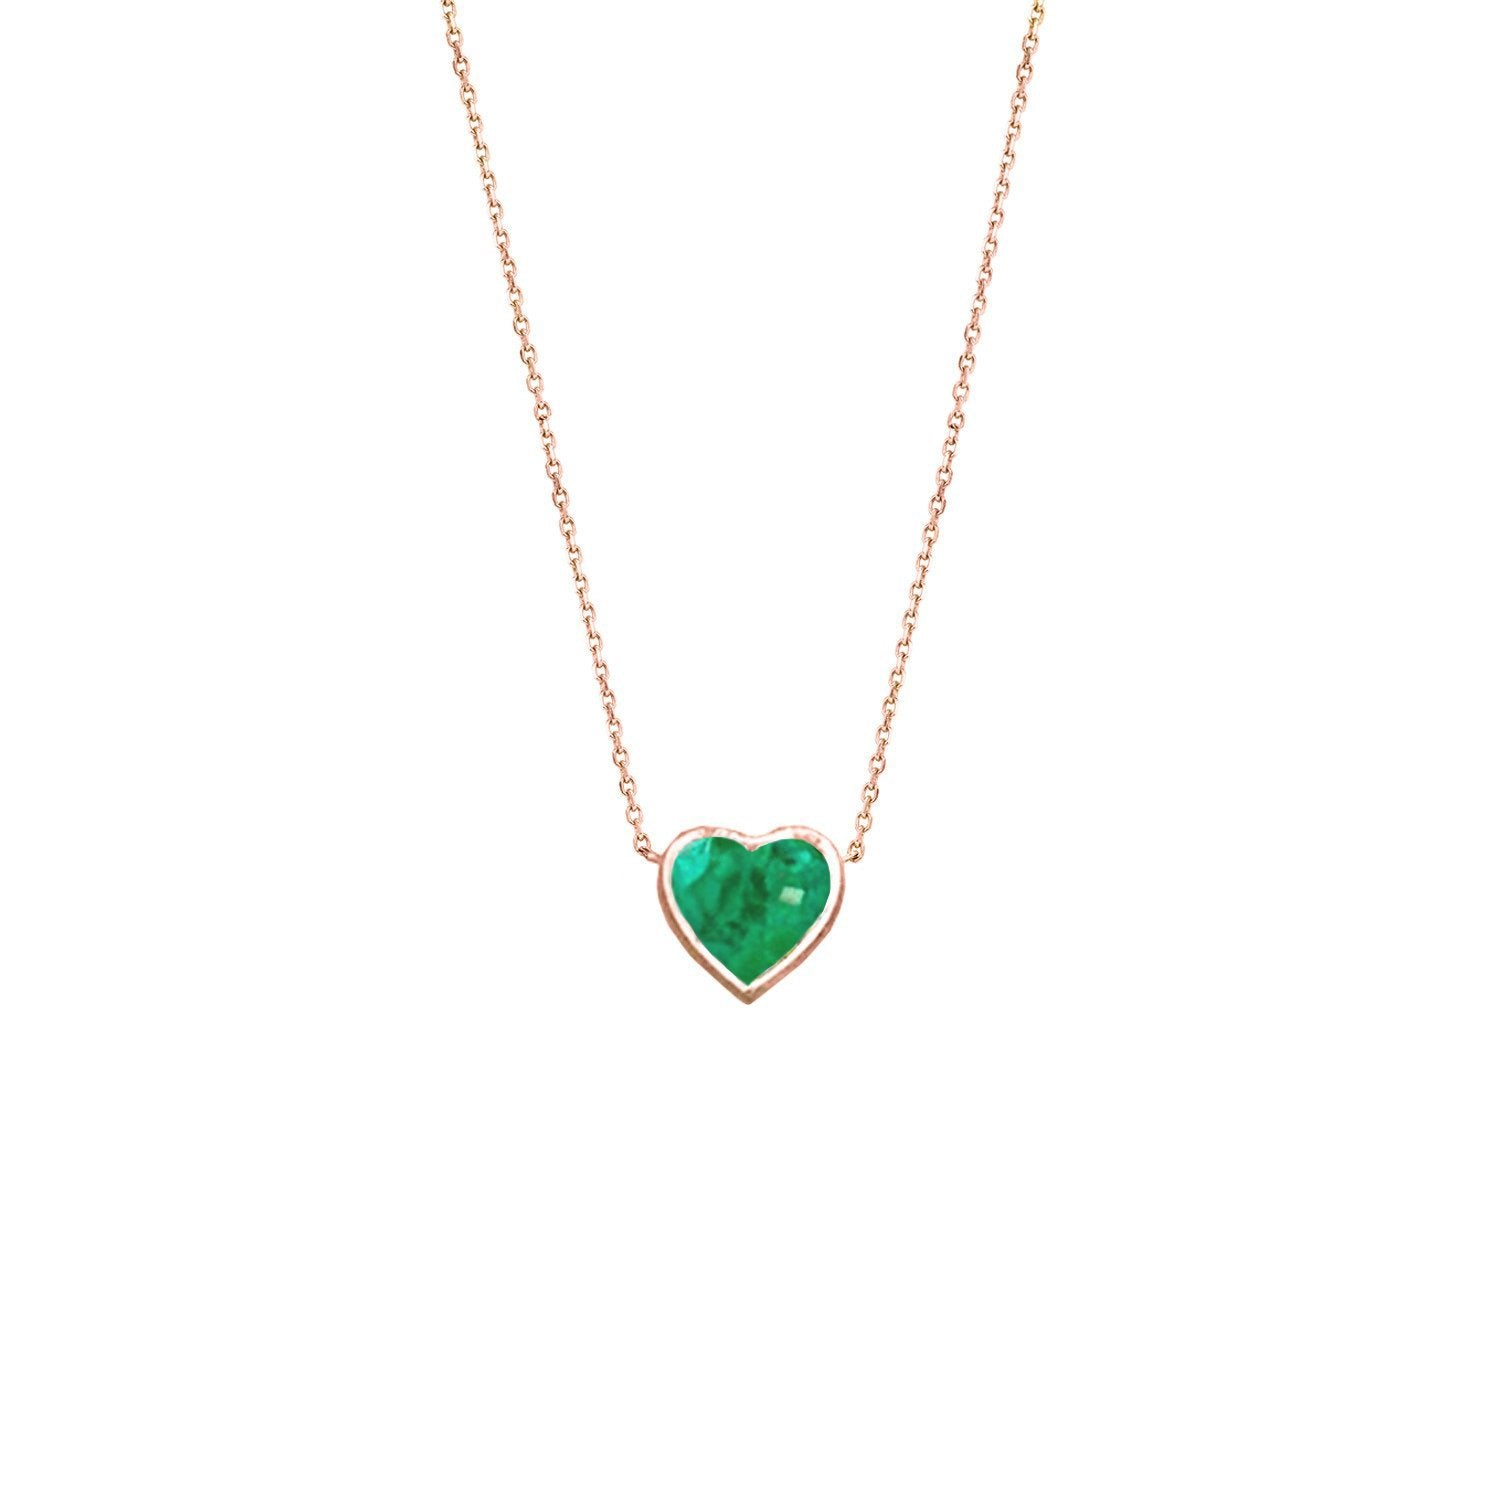 New floating heart shaped emerald necklace logan hollowell jewelry floating heart shaped emerald necklace aloadofball Gallery